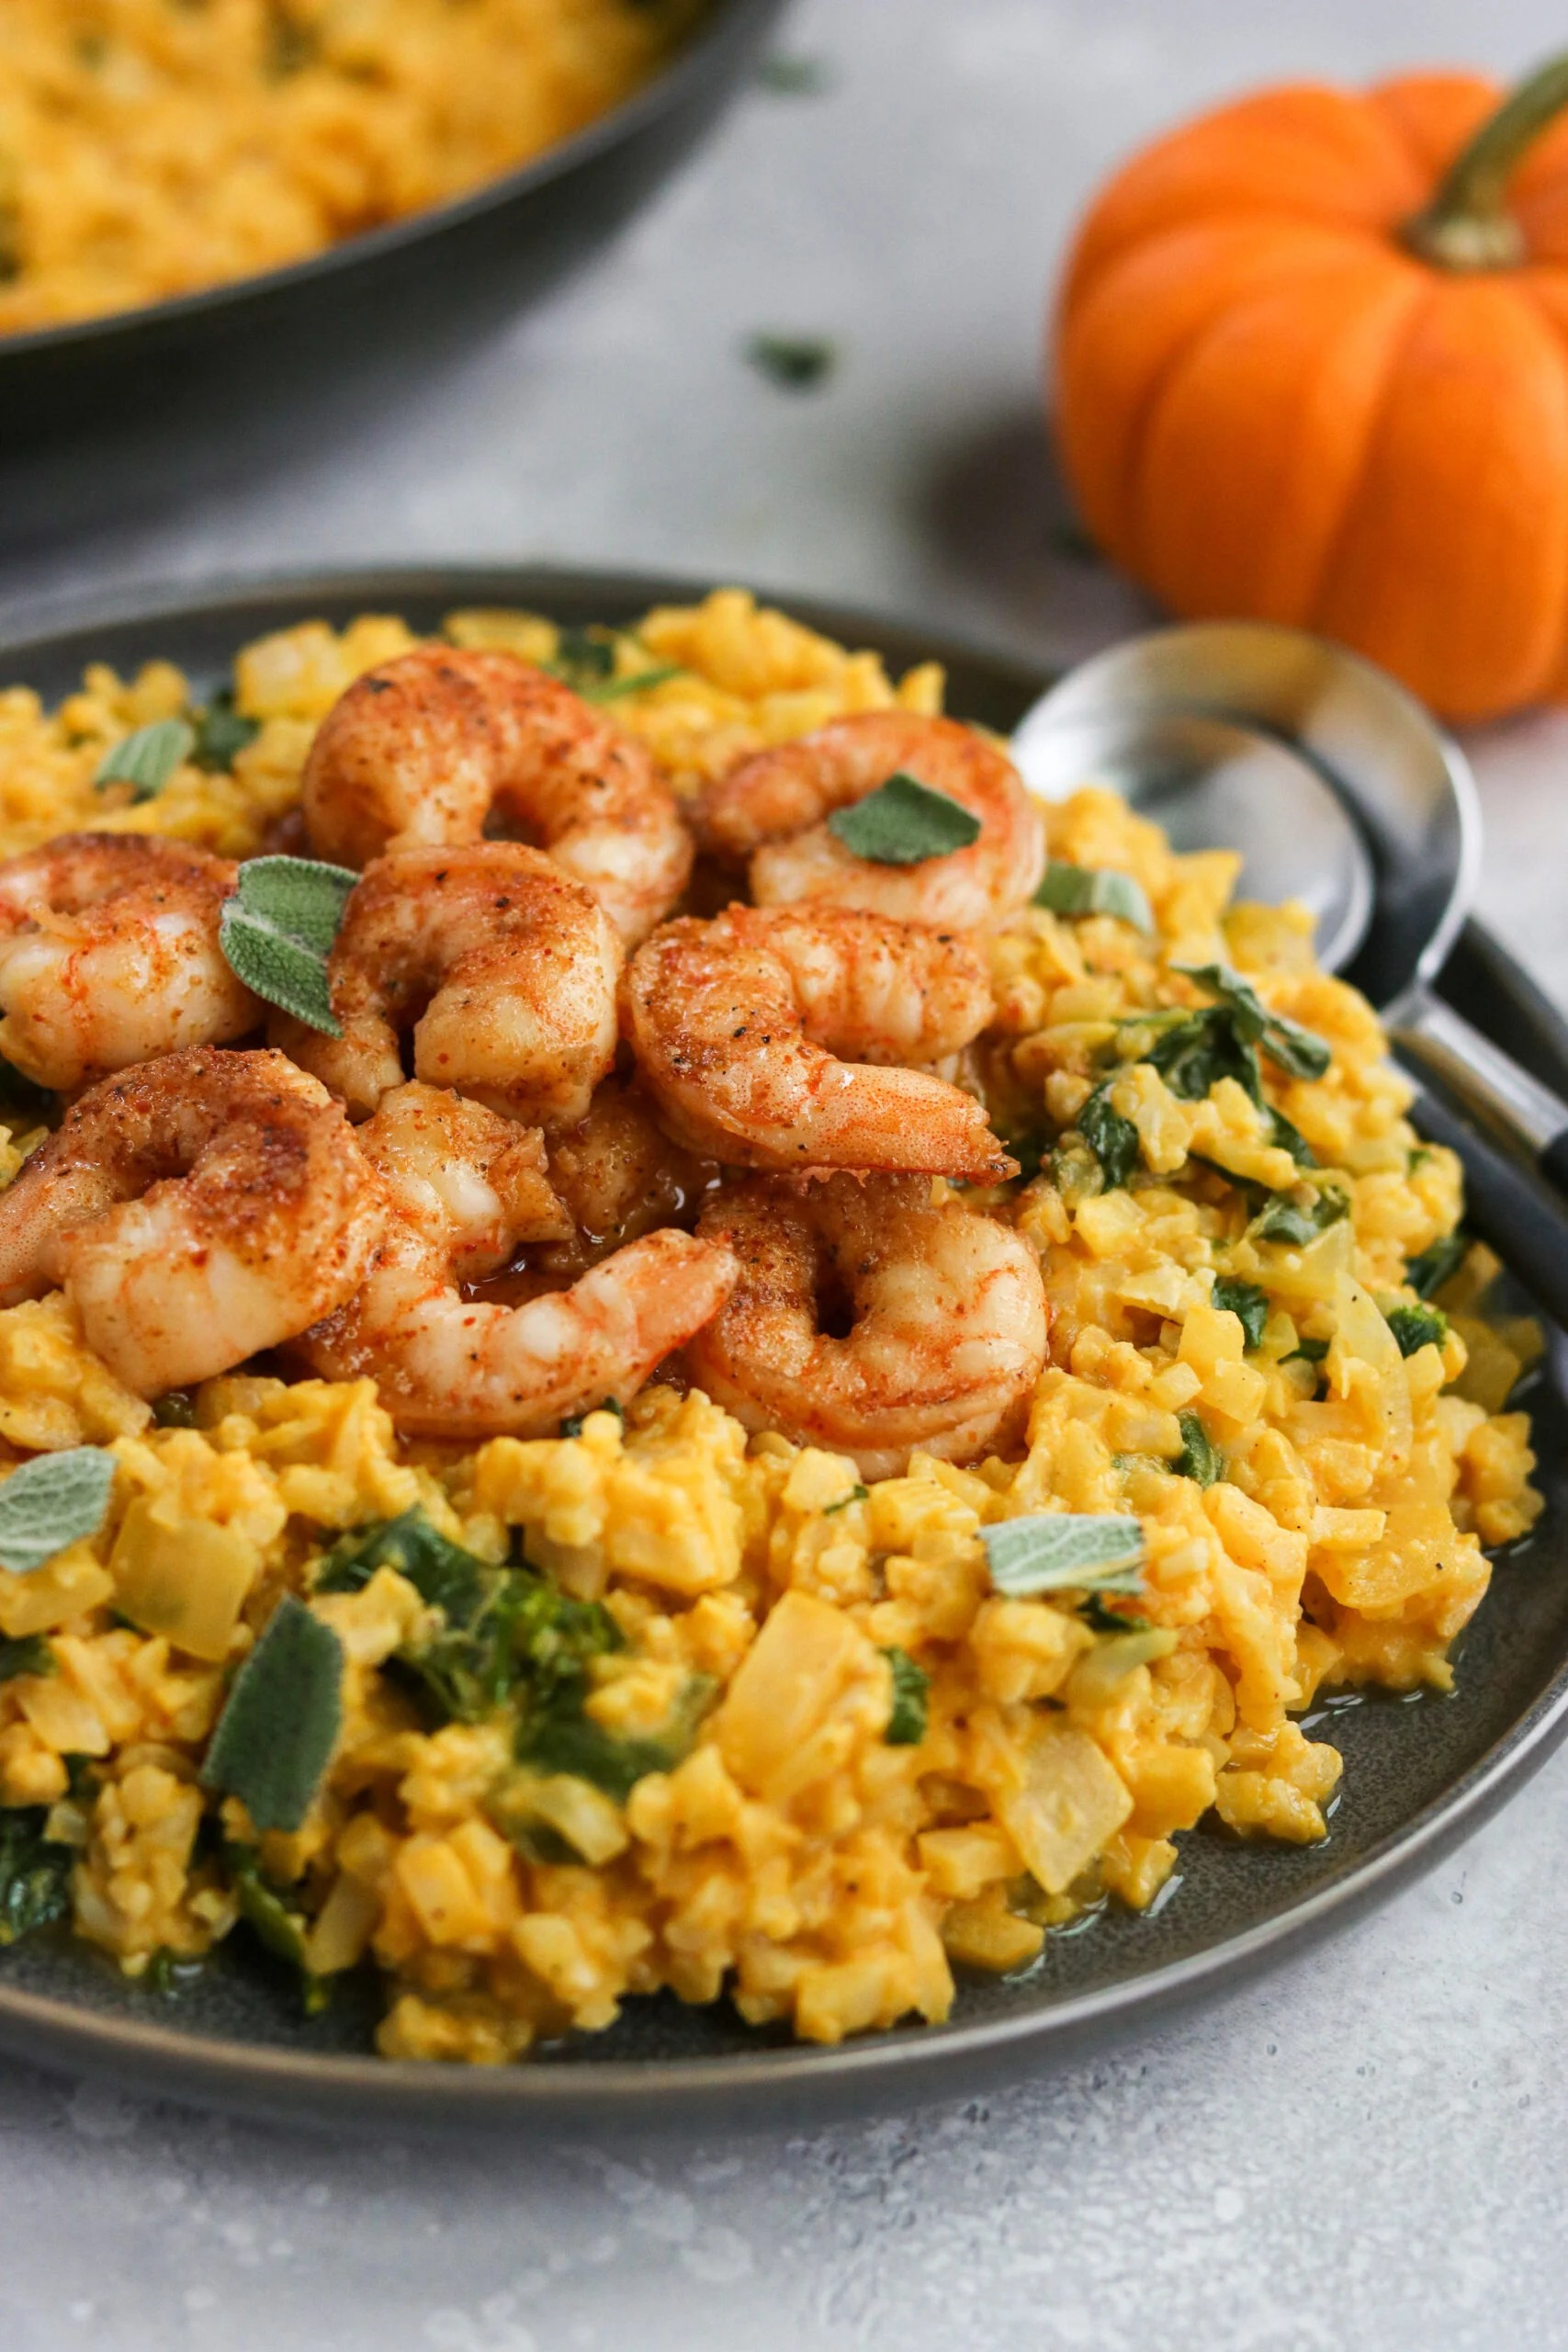 Whole30 Pumpkin Risotto with Shrimp